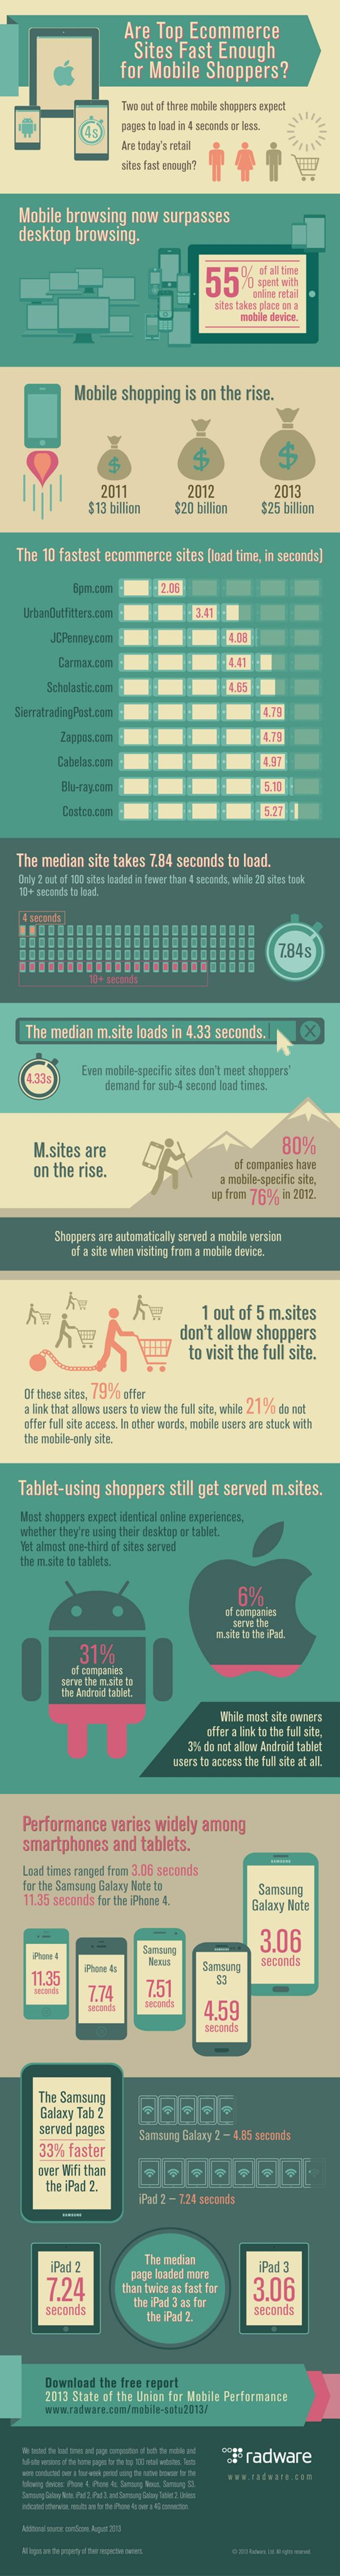 It's Not Them, It's Your Mobile Site [Infographic] #mobile #website #ecommerce